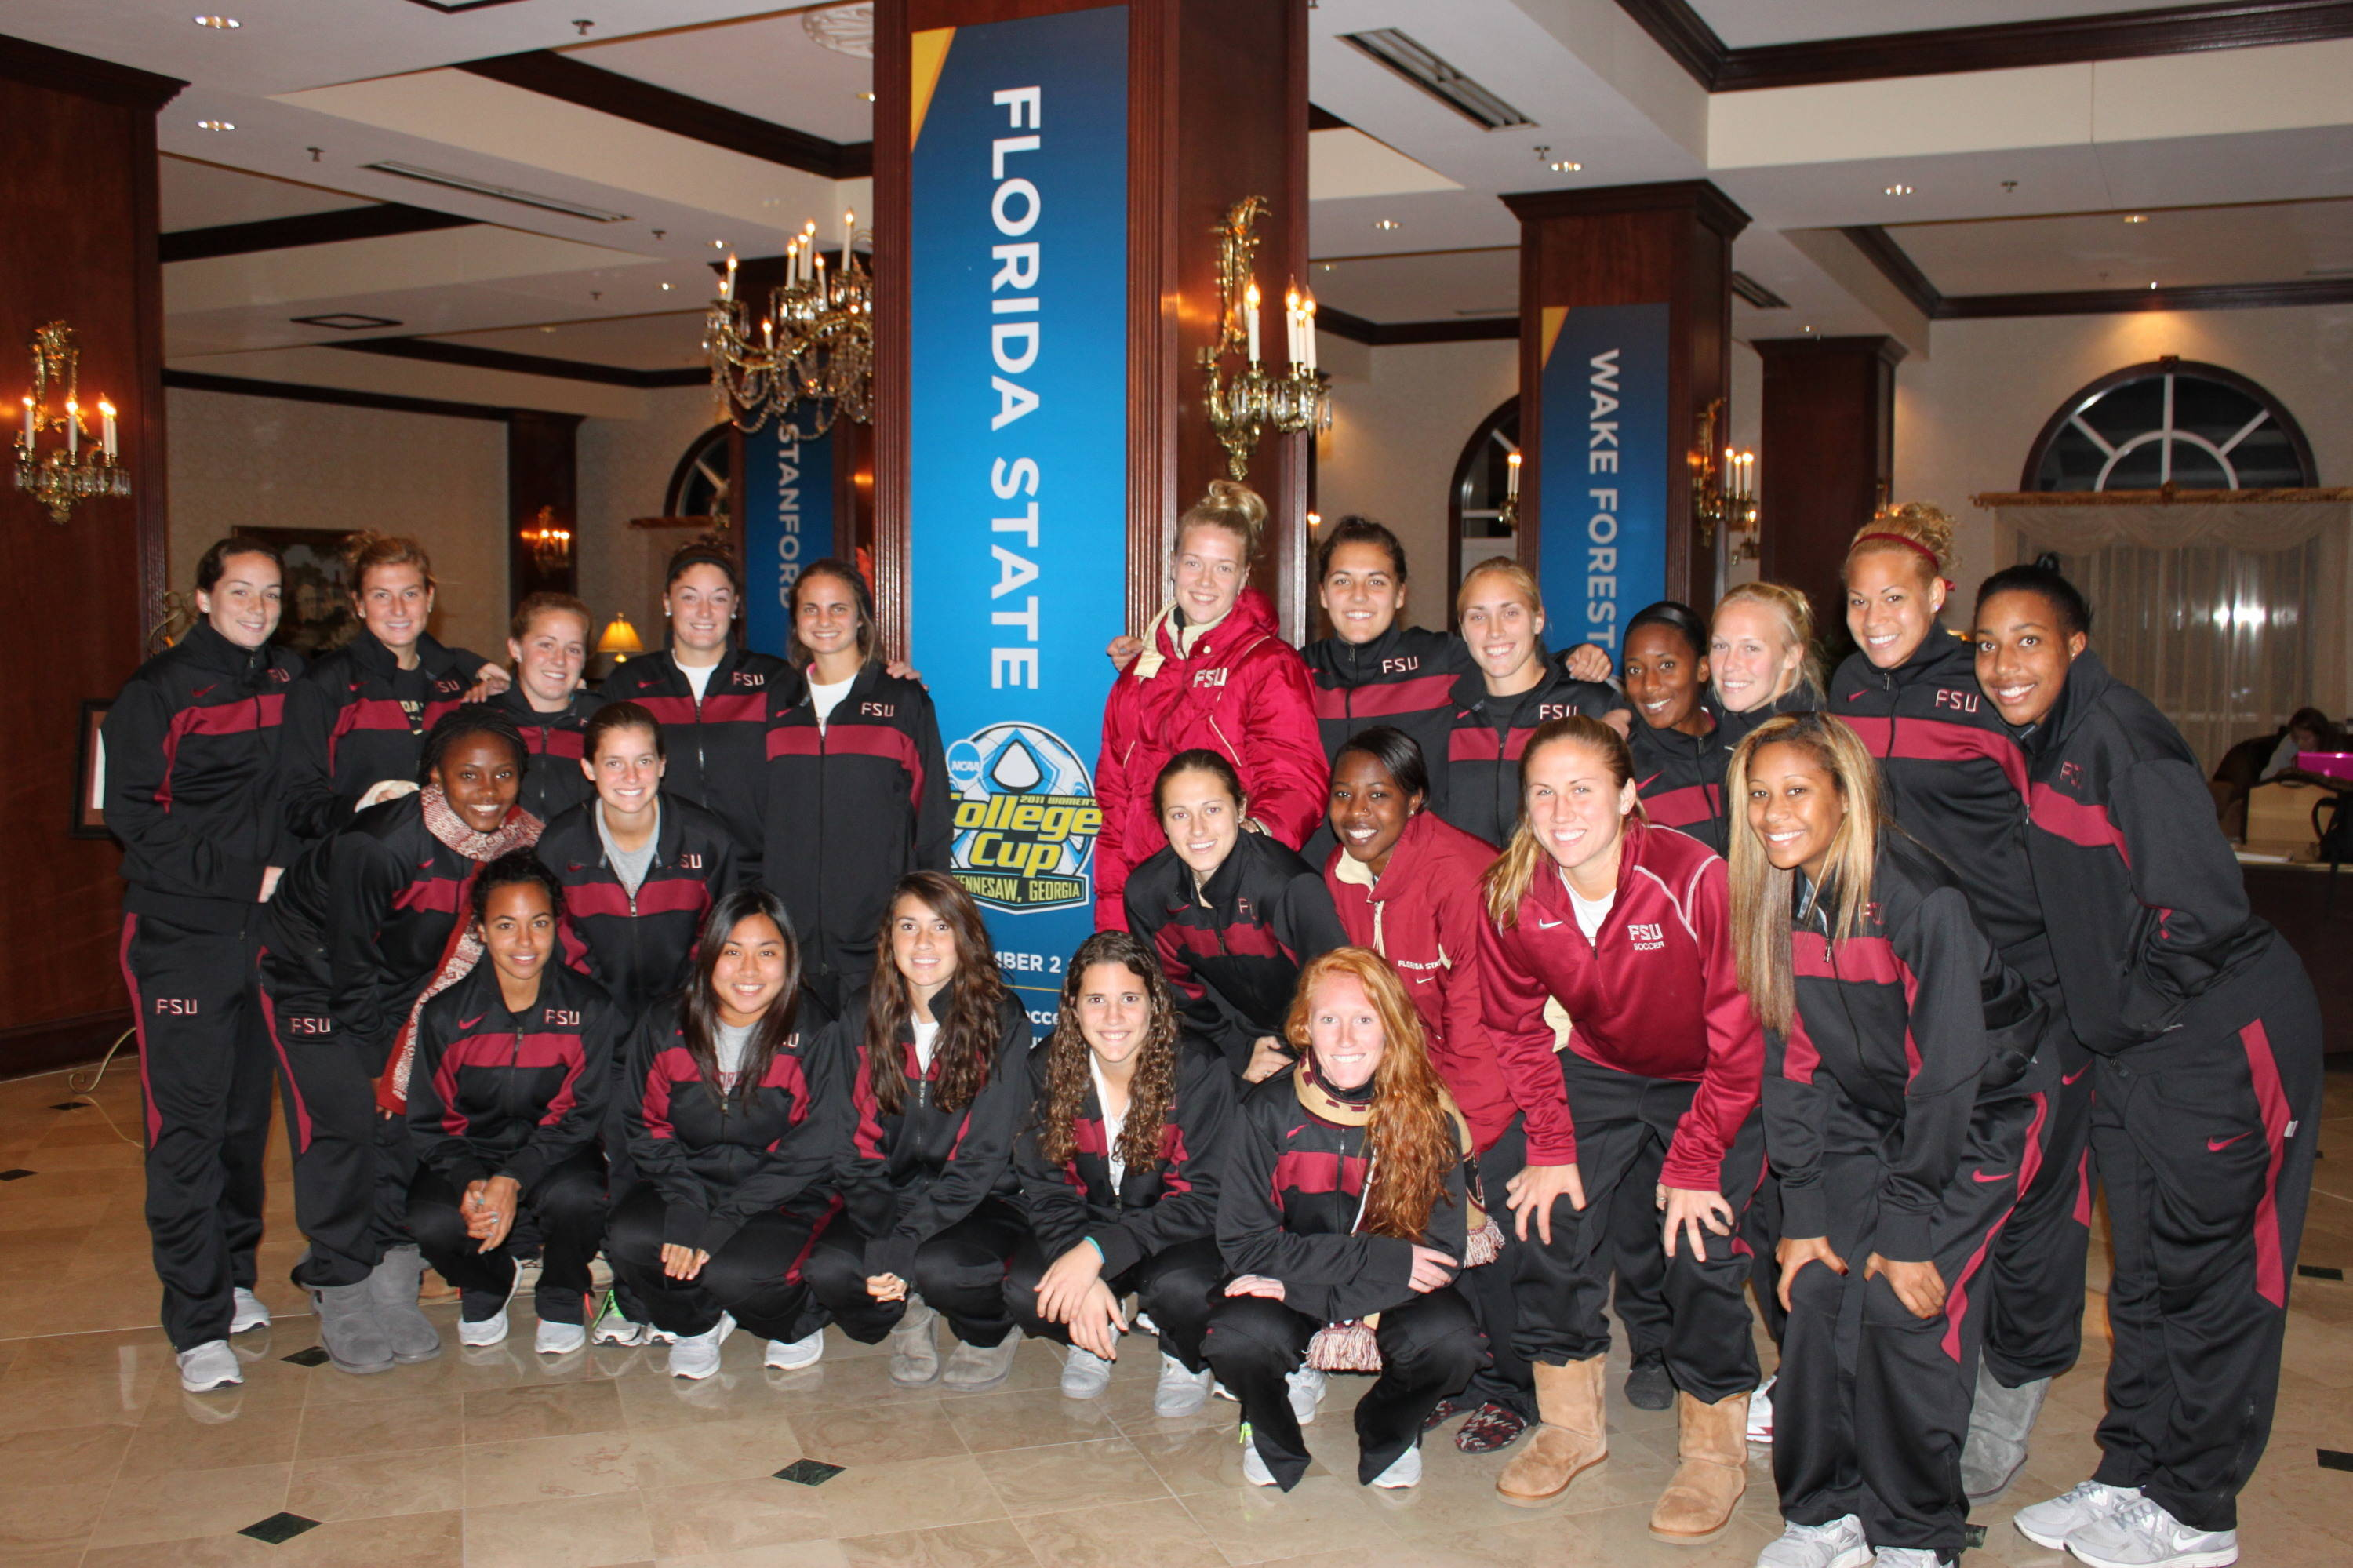 The team as they arrived at the hotel.